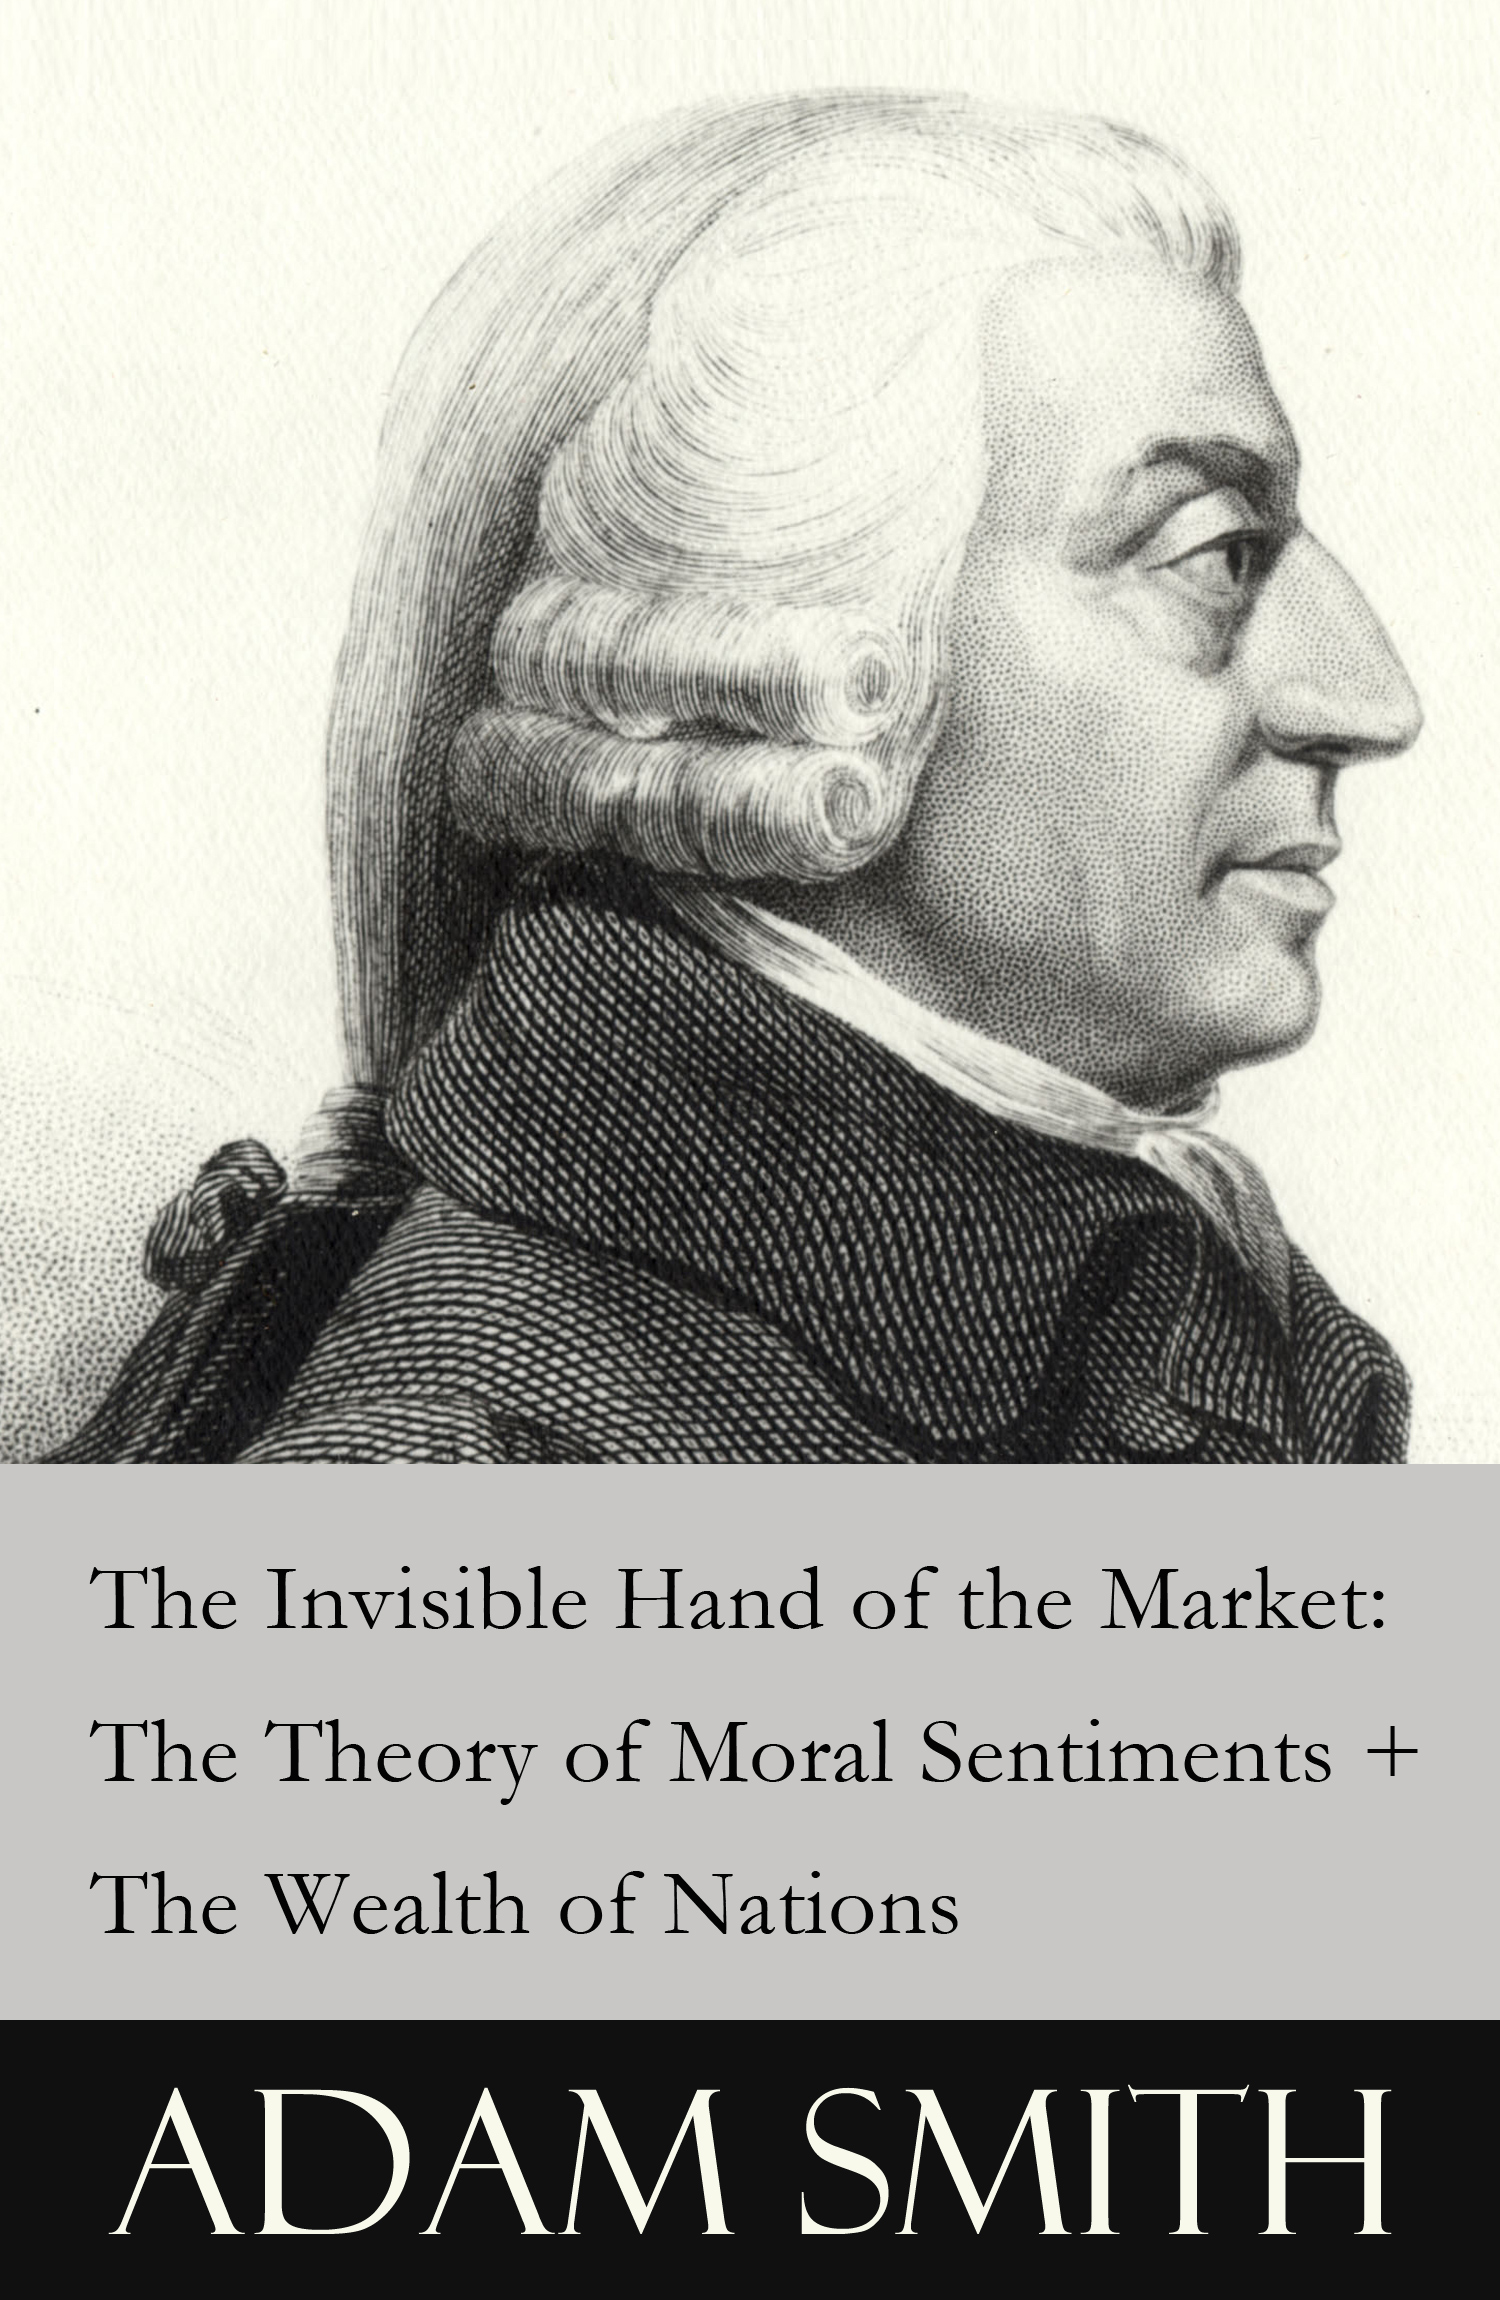 The Invisible Hand of the Market: The Theory of Moral Sentiments + The Wealth of Nations (2 Pioneering Studies of Capitalism)